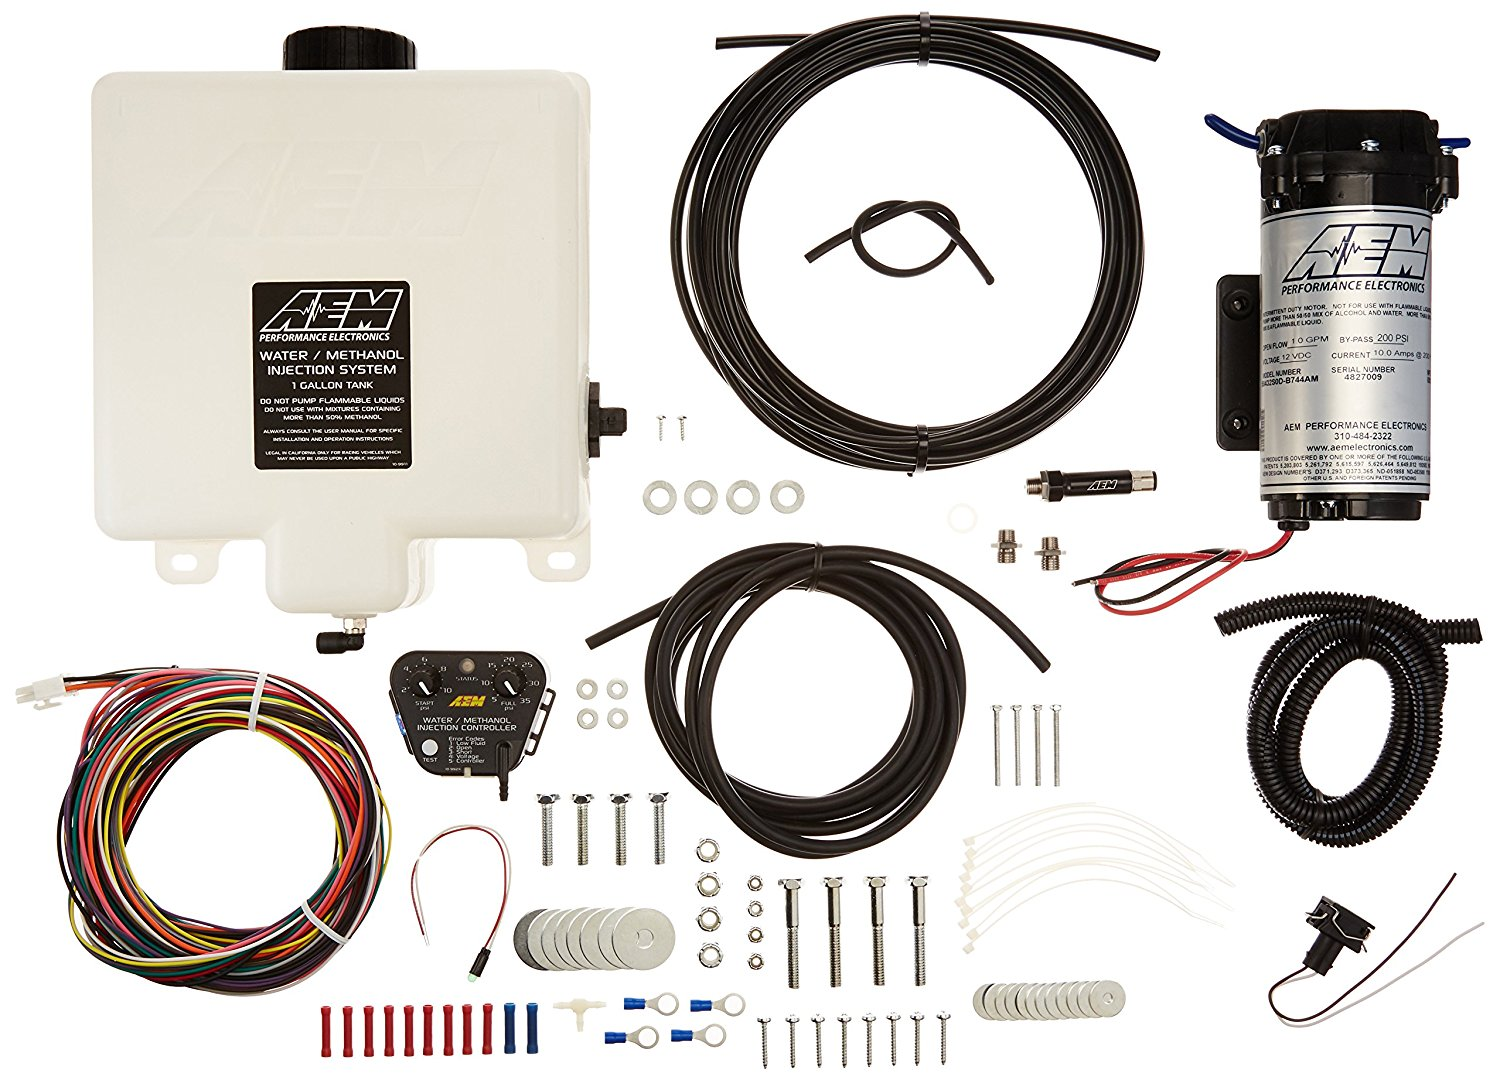 AEM V2 1-Gallon Water/Methanol Injection Kit with Internal MAP Sensor for Corvette, Camaro and others